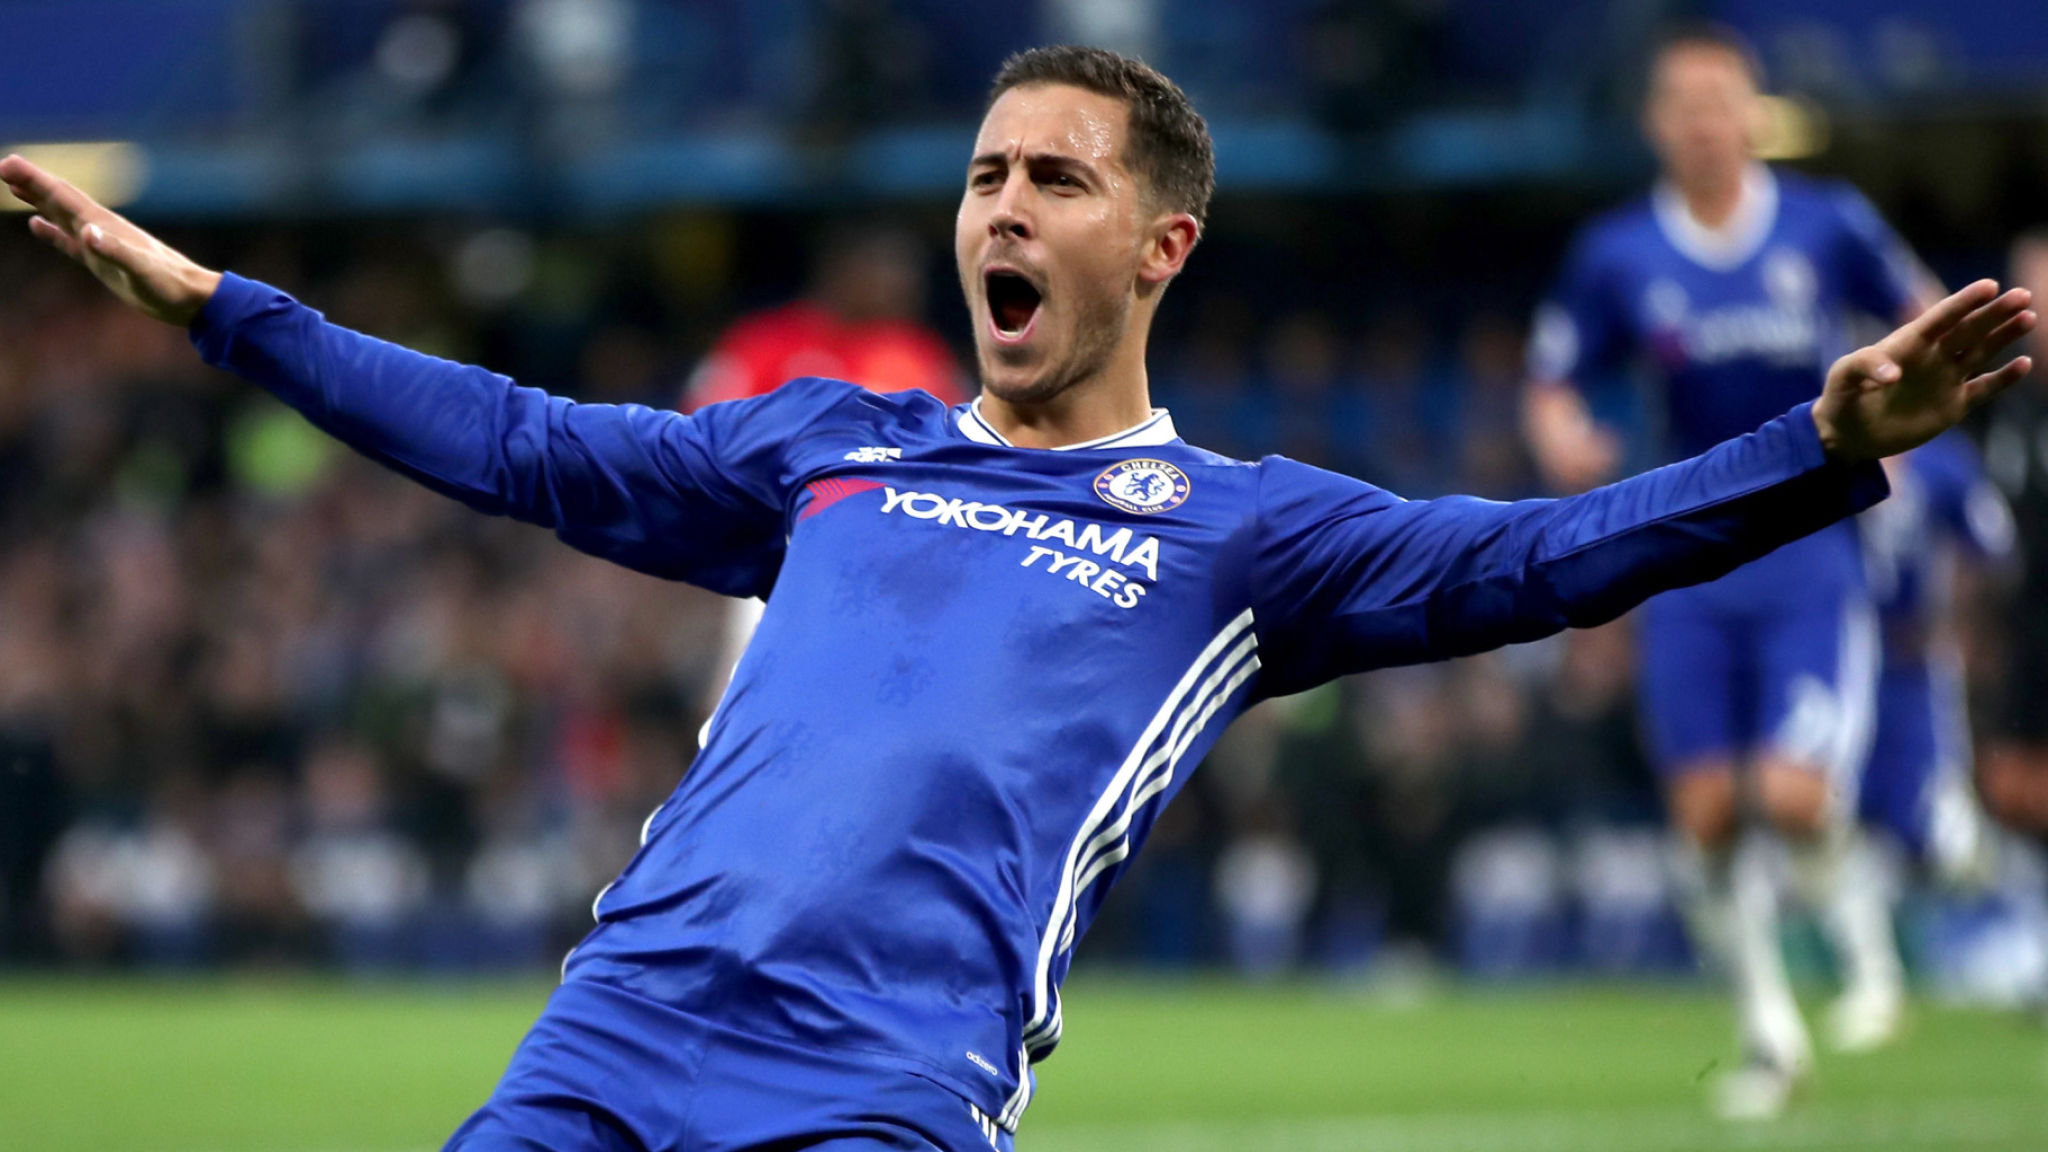 Transfer: Chelsea cleared to sign Eden Hazard's replacement for £100m